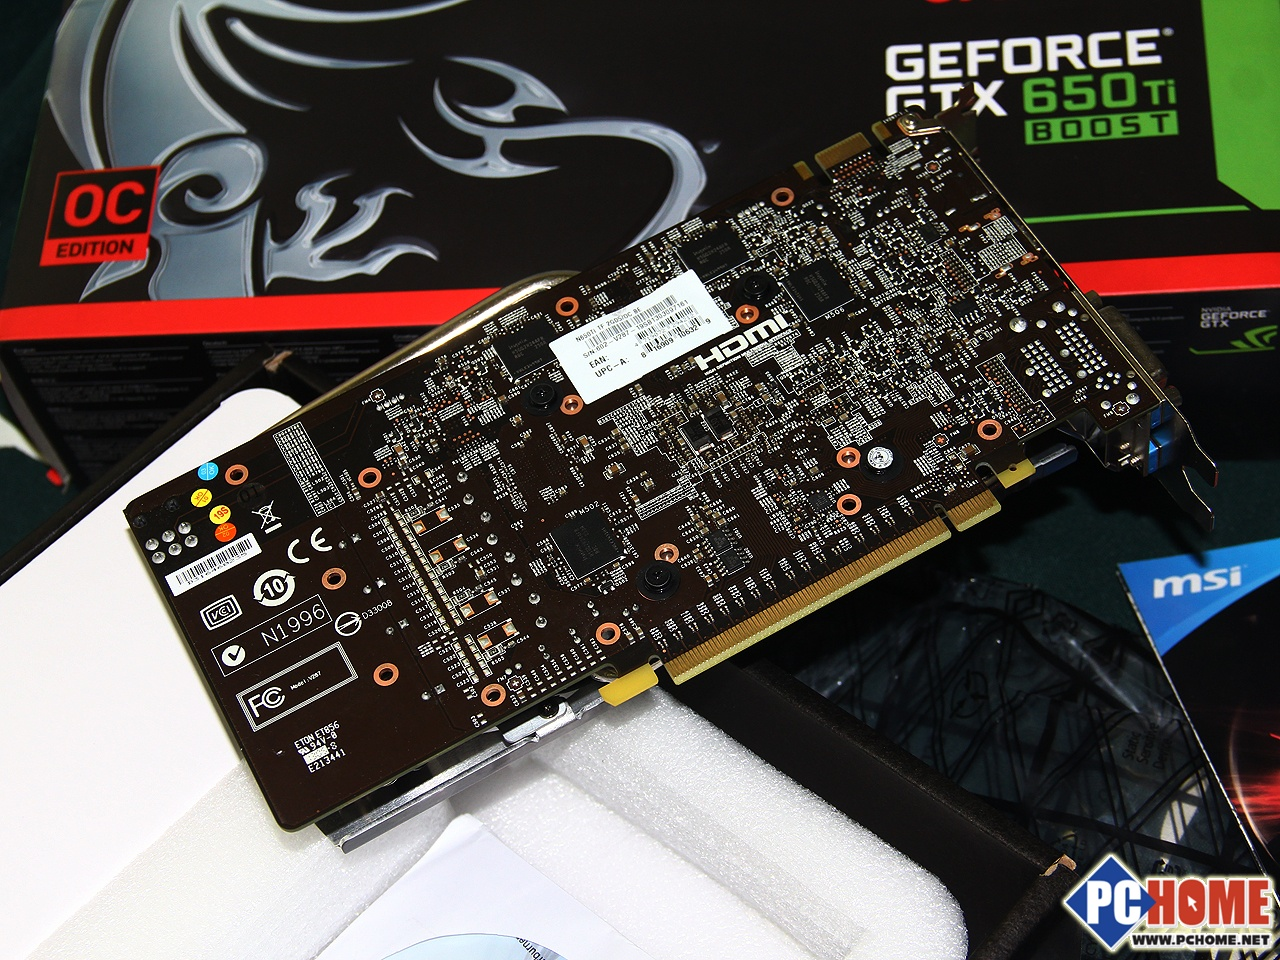 MSI GTX 650 Ti Boost TwinFrozr Gaming (4)